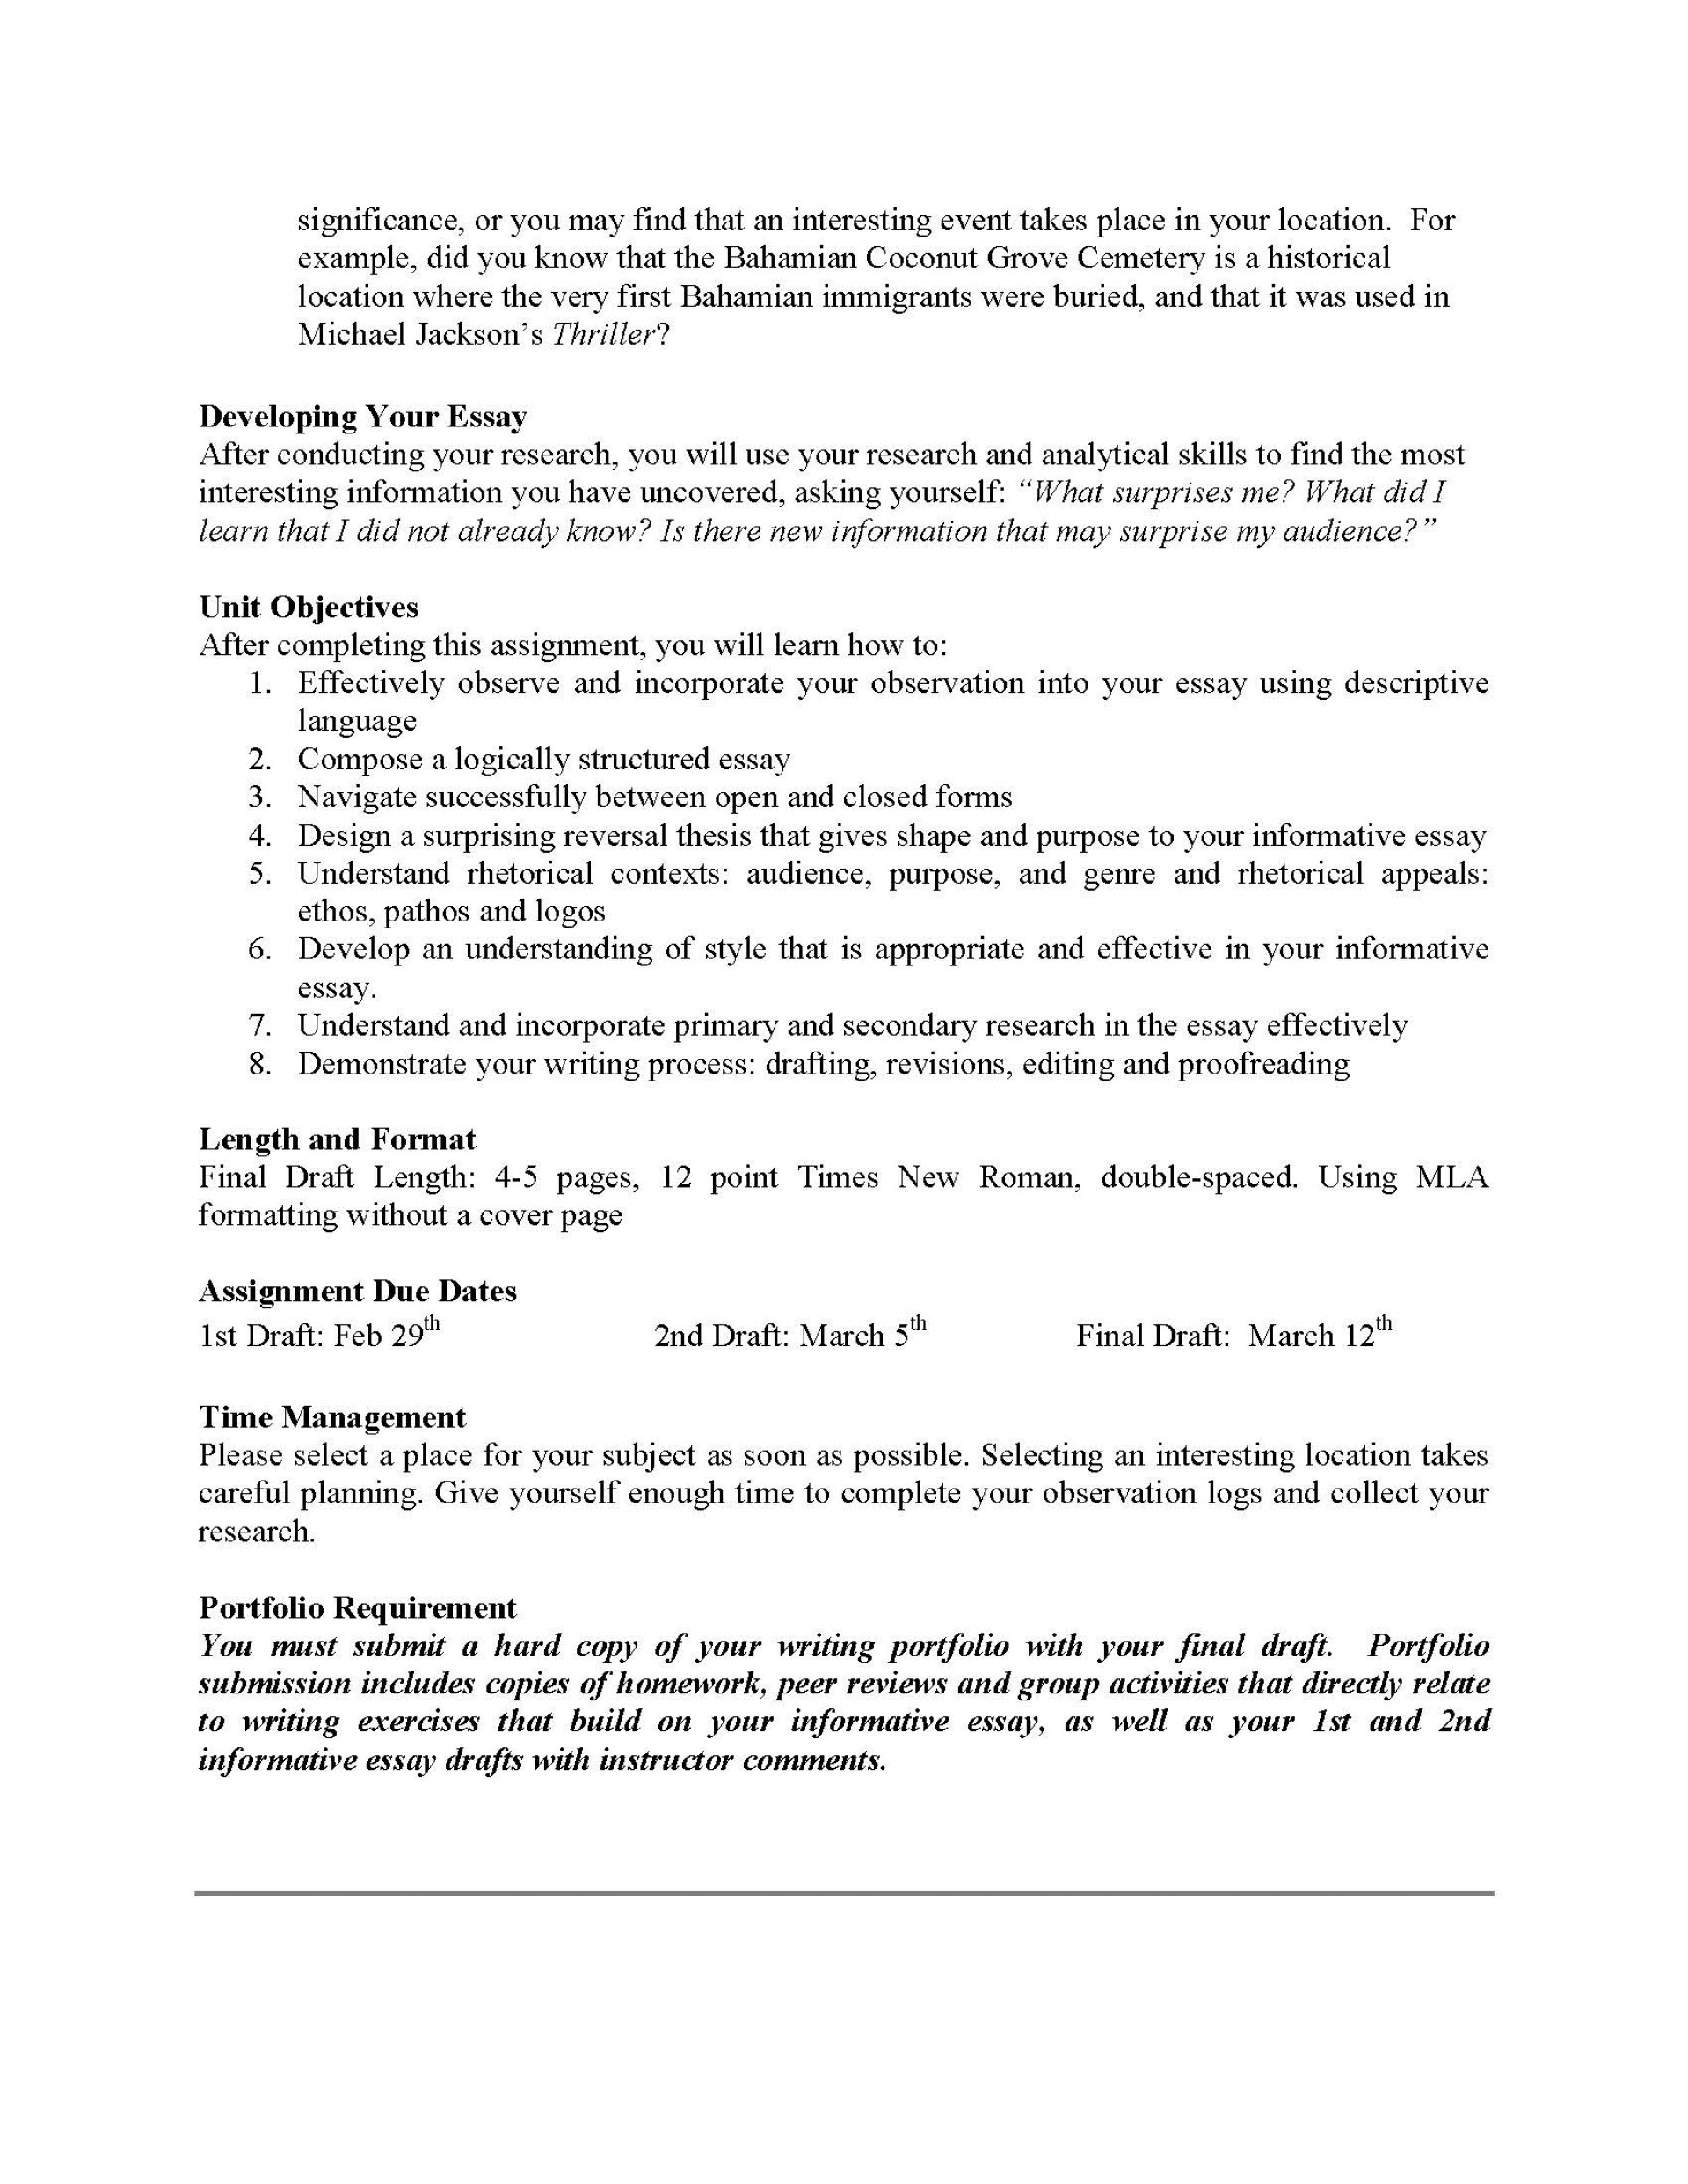 014 Informative Essay Unit Assignment Page 2 Dreaded Ideas Rubric 6th Grade 1920